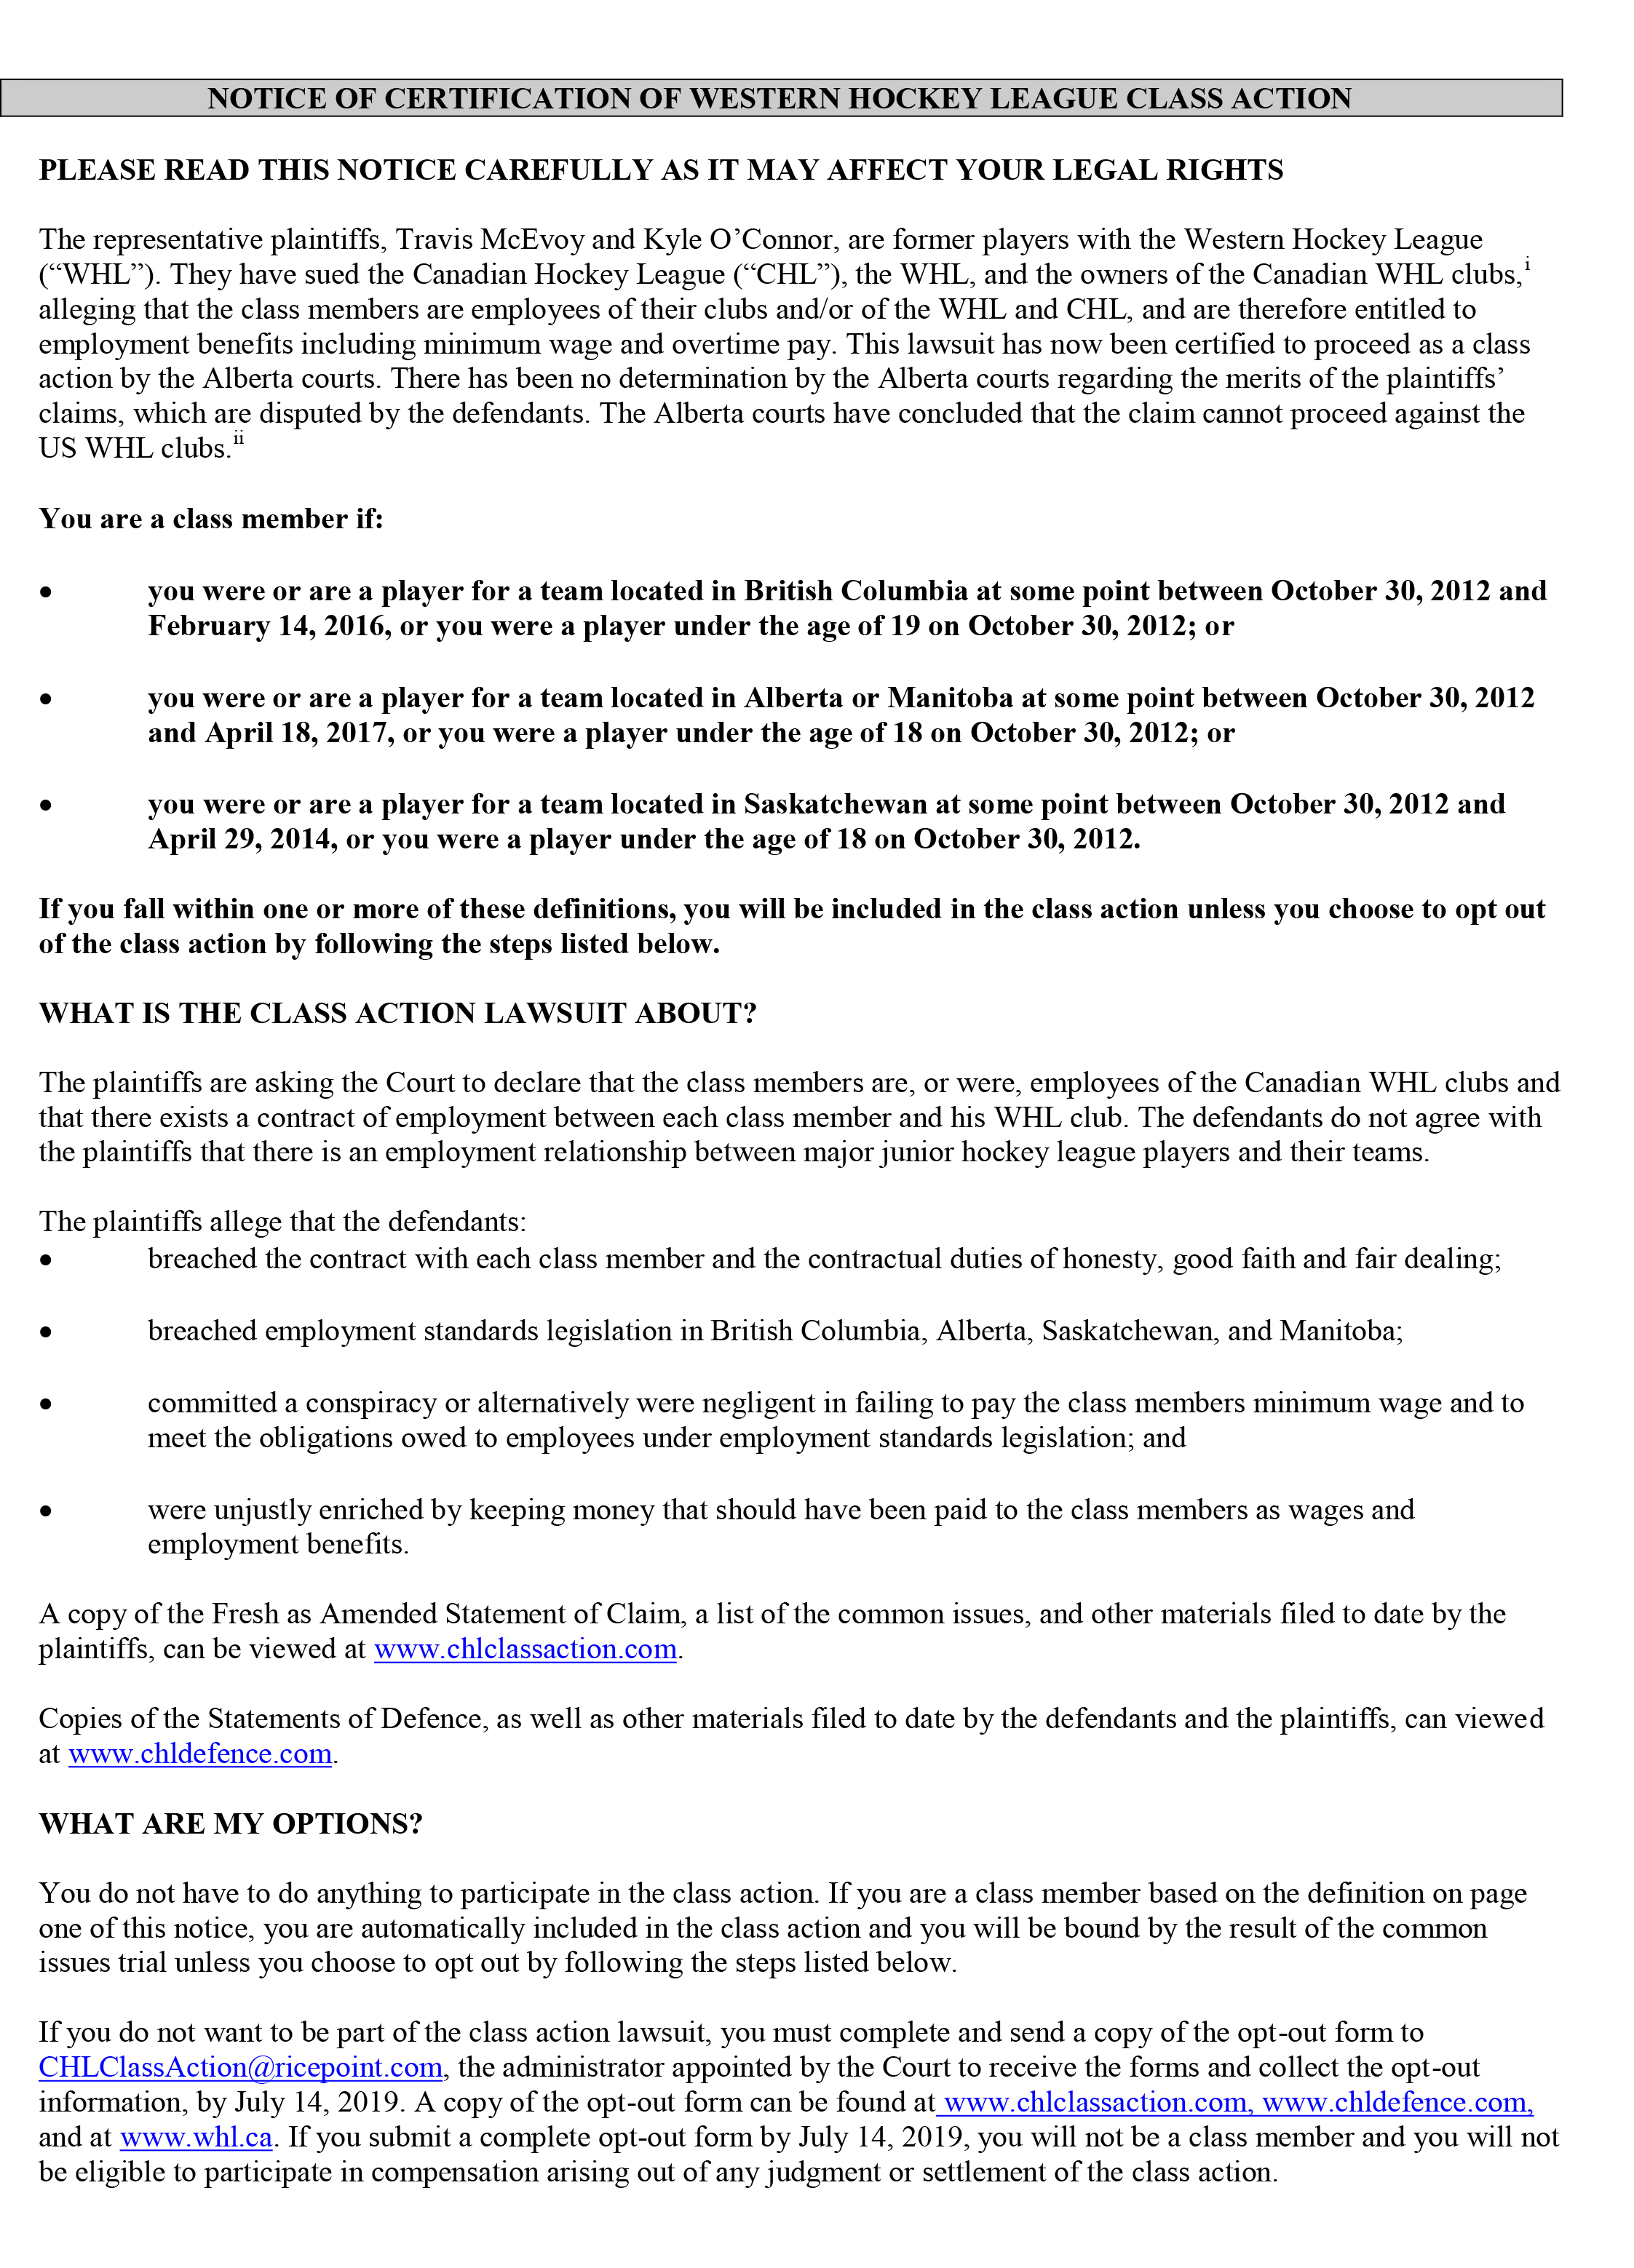 NOTICE OF CERTIFICATION OF WESTERN HOCKEY LEAGUE CLASS ACTION-1